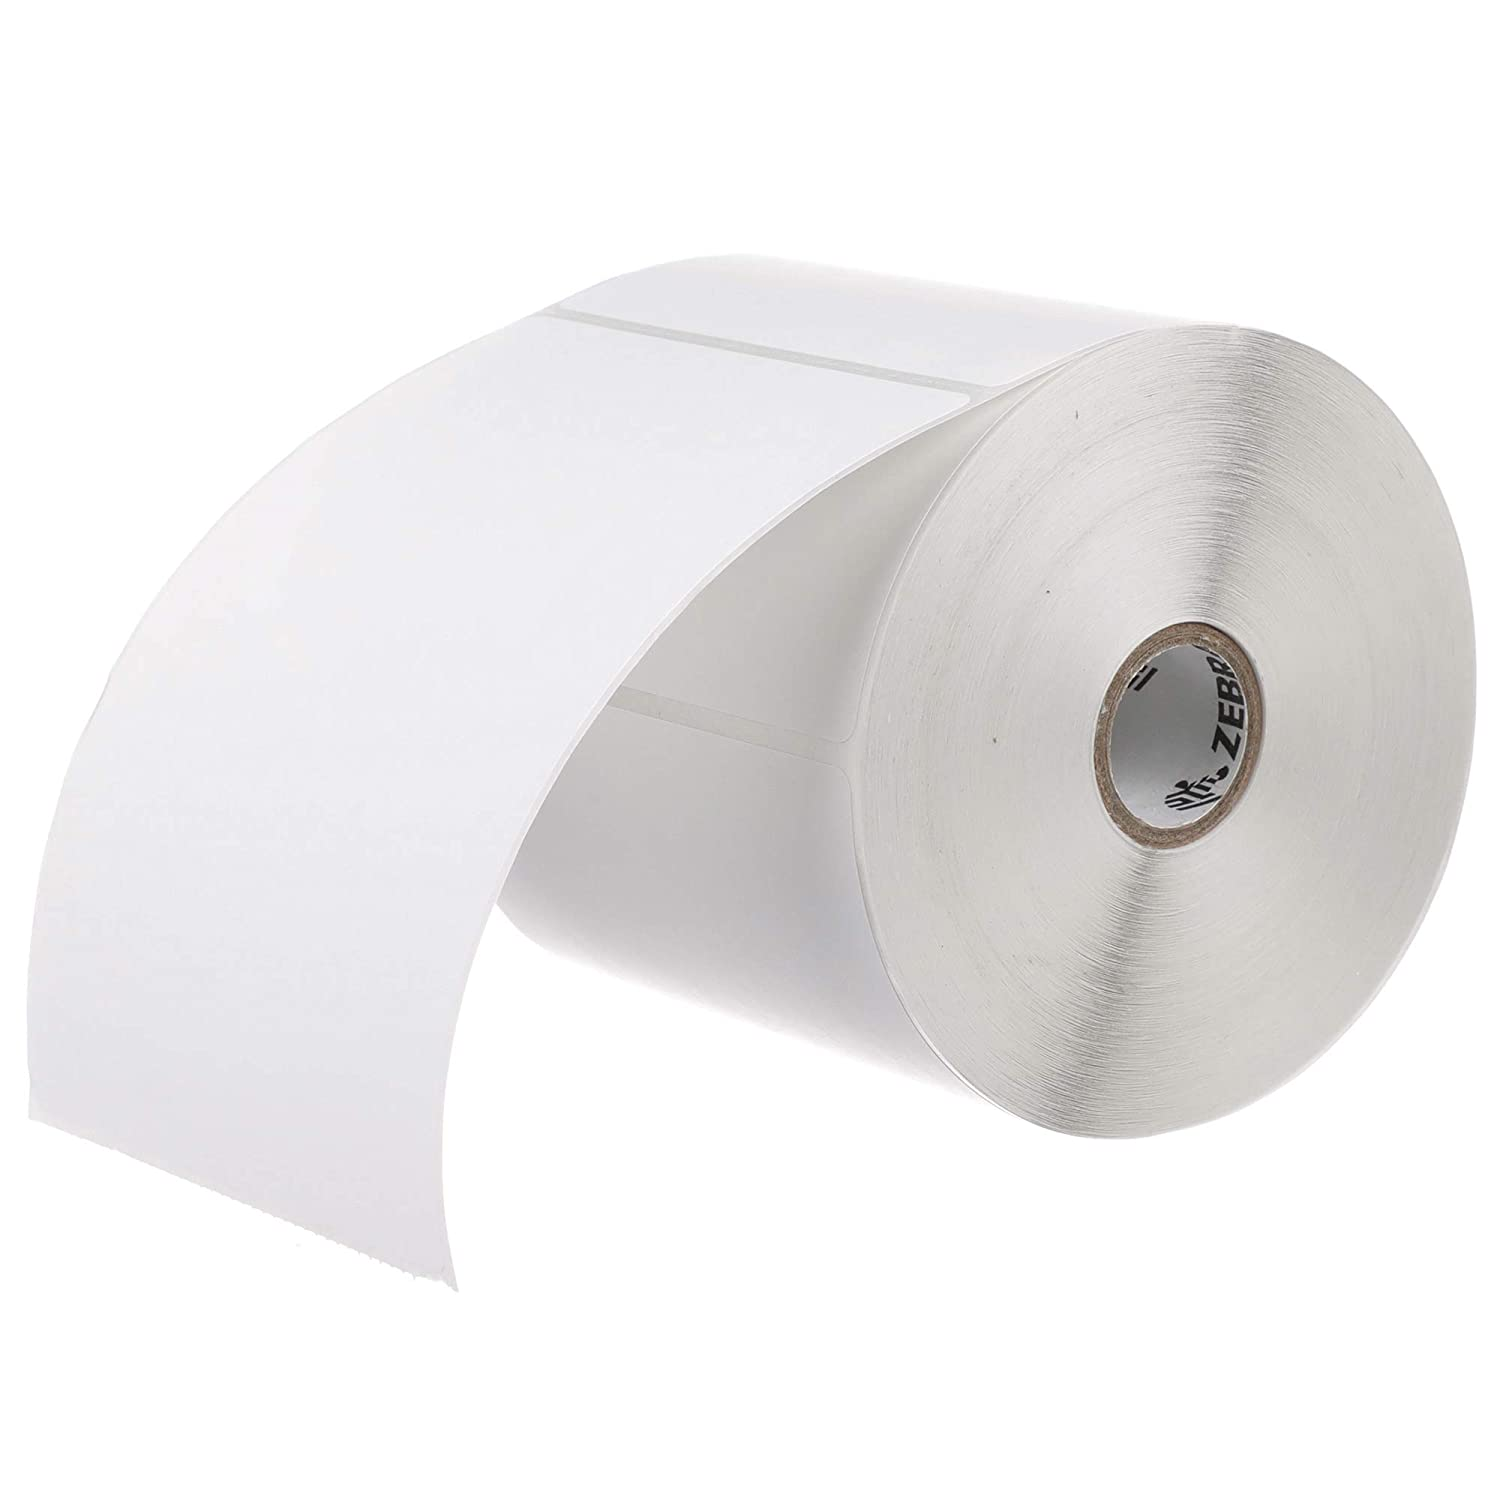 Highest Quality 4x6 Zebra Top Coated Direct Thermal 1 Rolls of 475 Labels